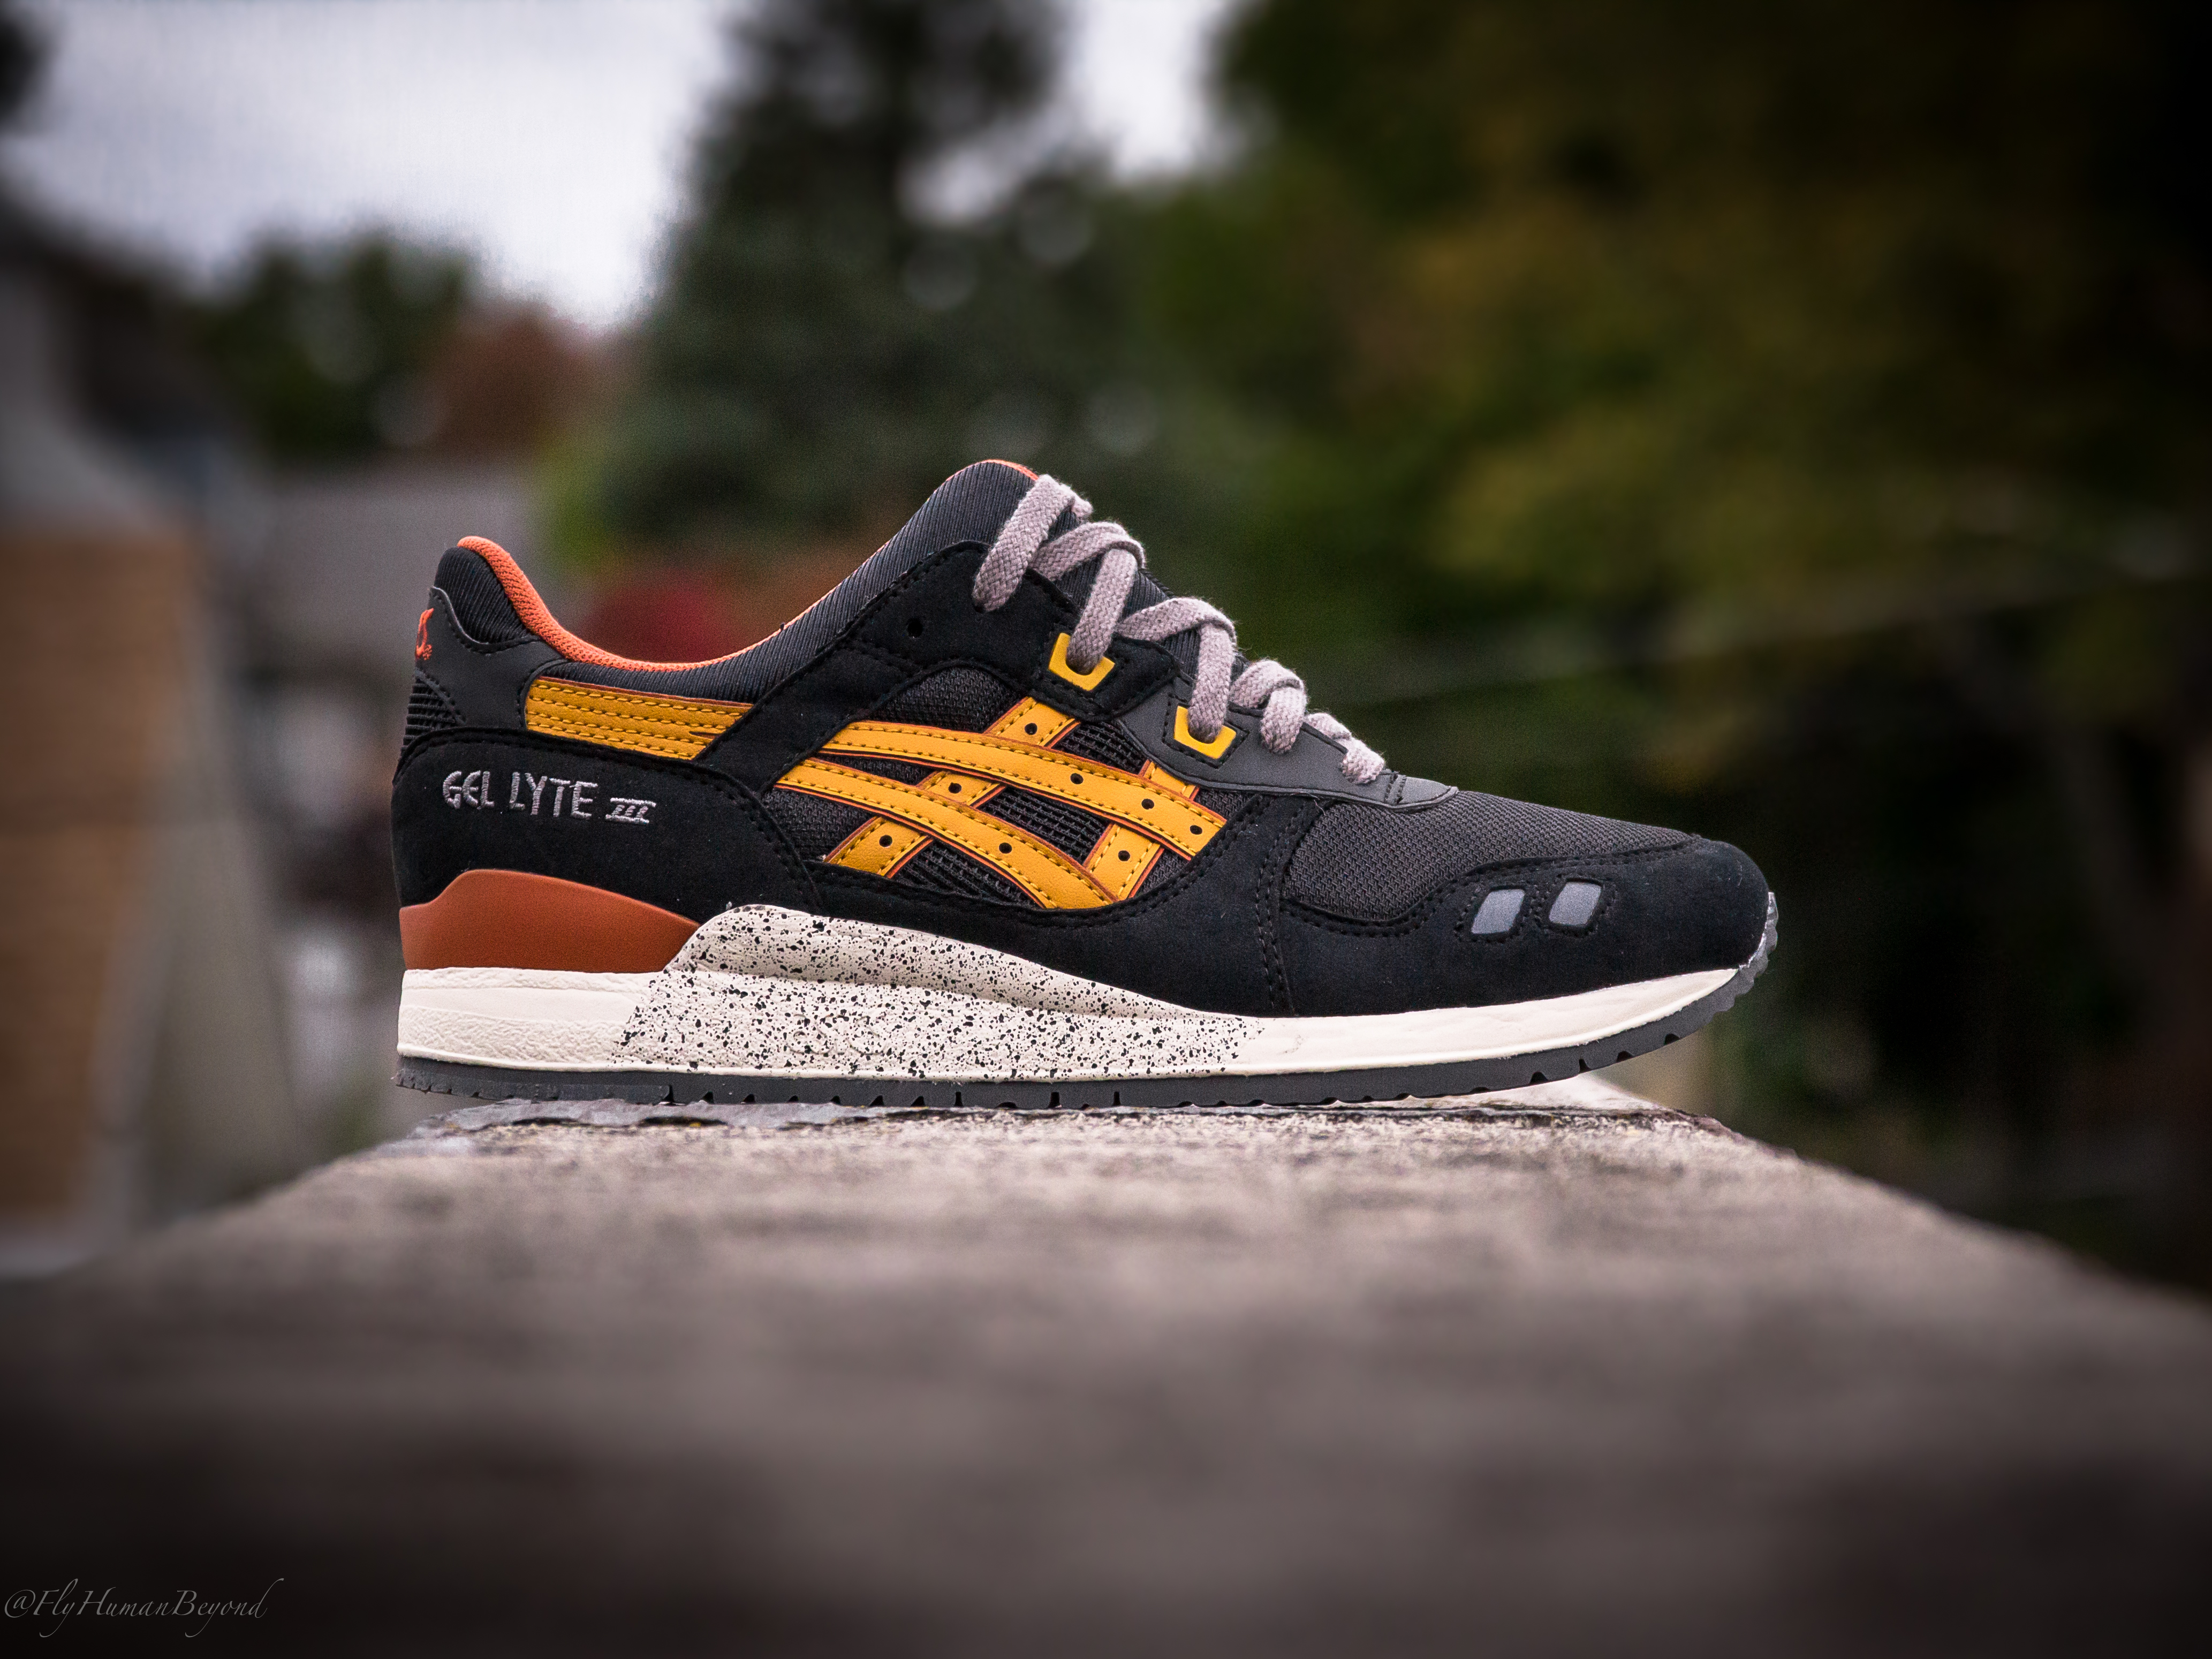 asics gel lyte iii black tan now available packer shoes packer shoes. Black Bedroom Furniture Sets. Home Design Ideas